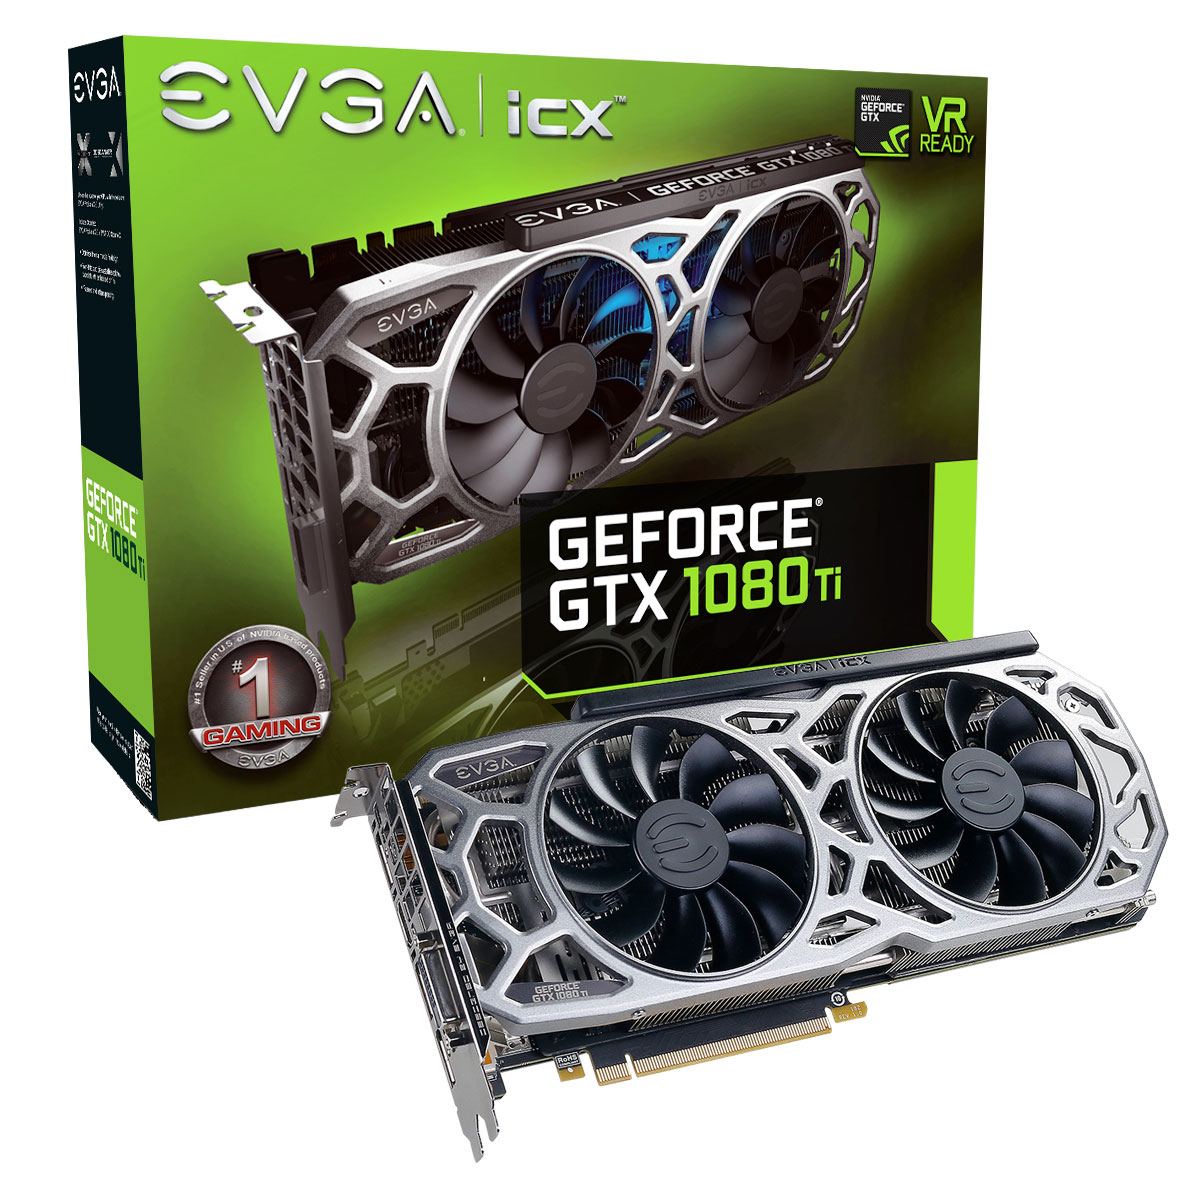 evga geforce gtx 1080 ti sc2 gaming icx carte graphique evga sur ldlc. Black Bedroom Furniture Sets. Home Design Ideas